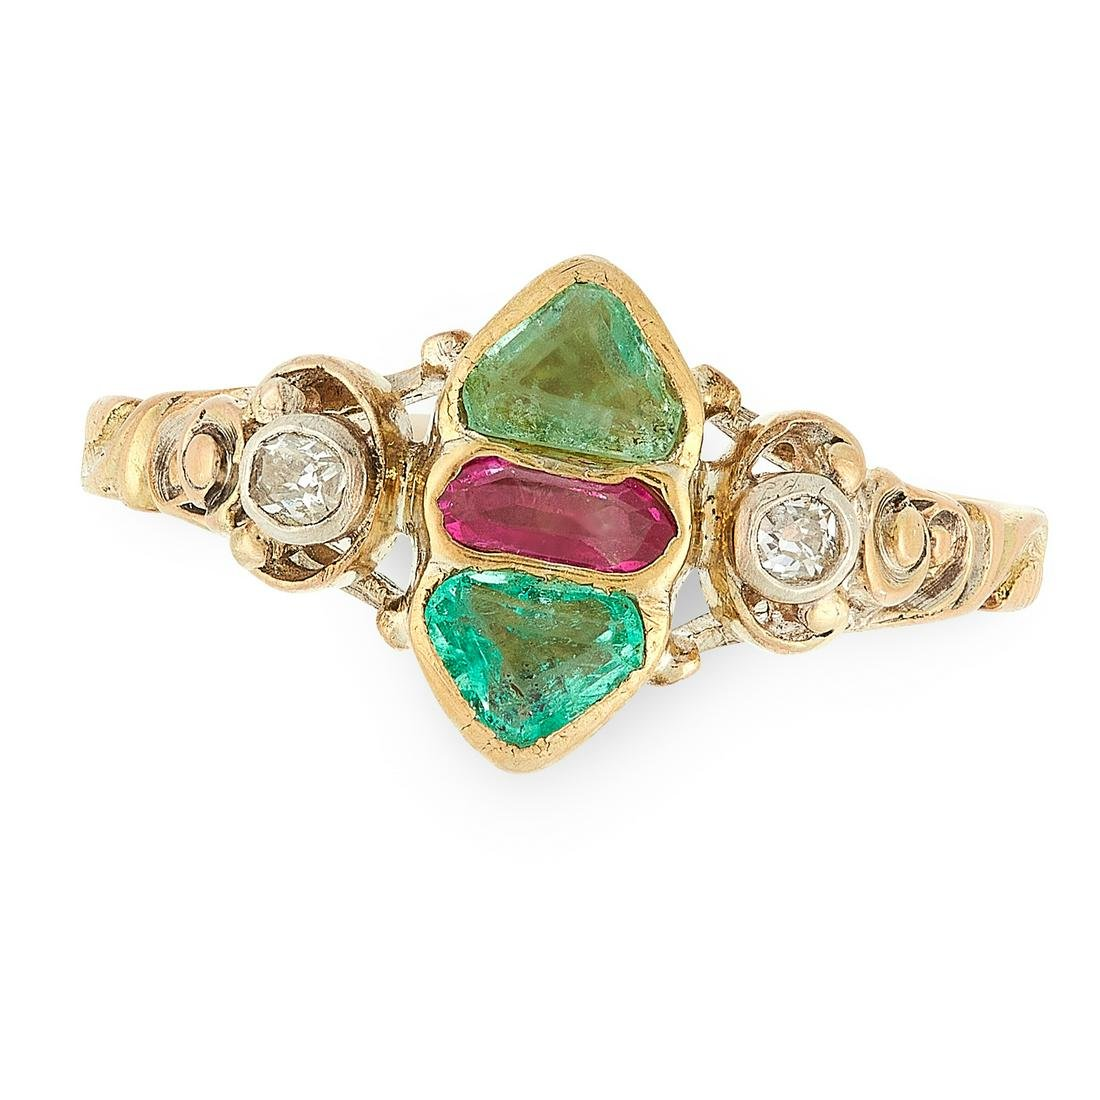 AN ANTIQUE GEORGIAN RUBY, EMERALD AND DIAMOND RING in